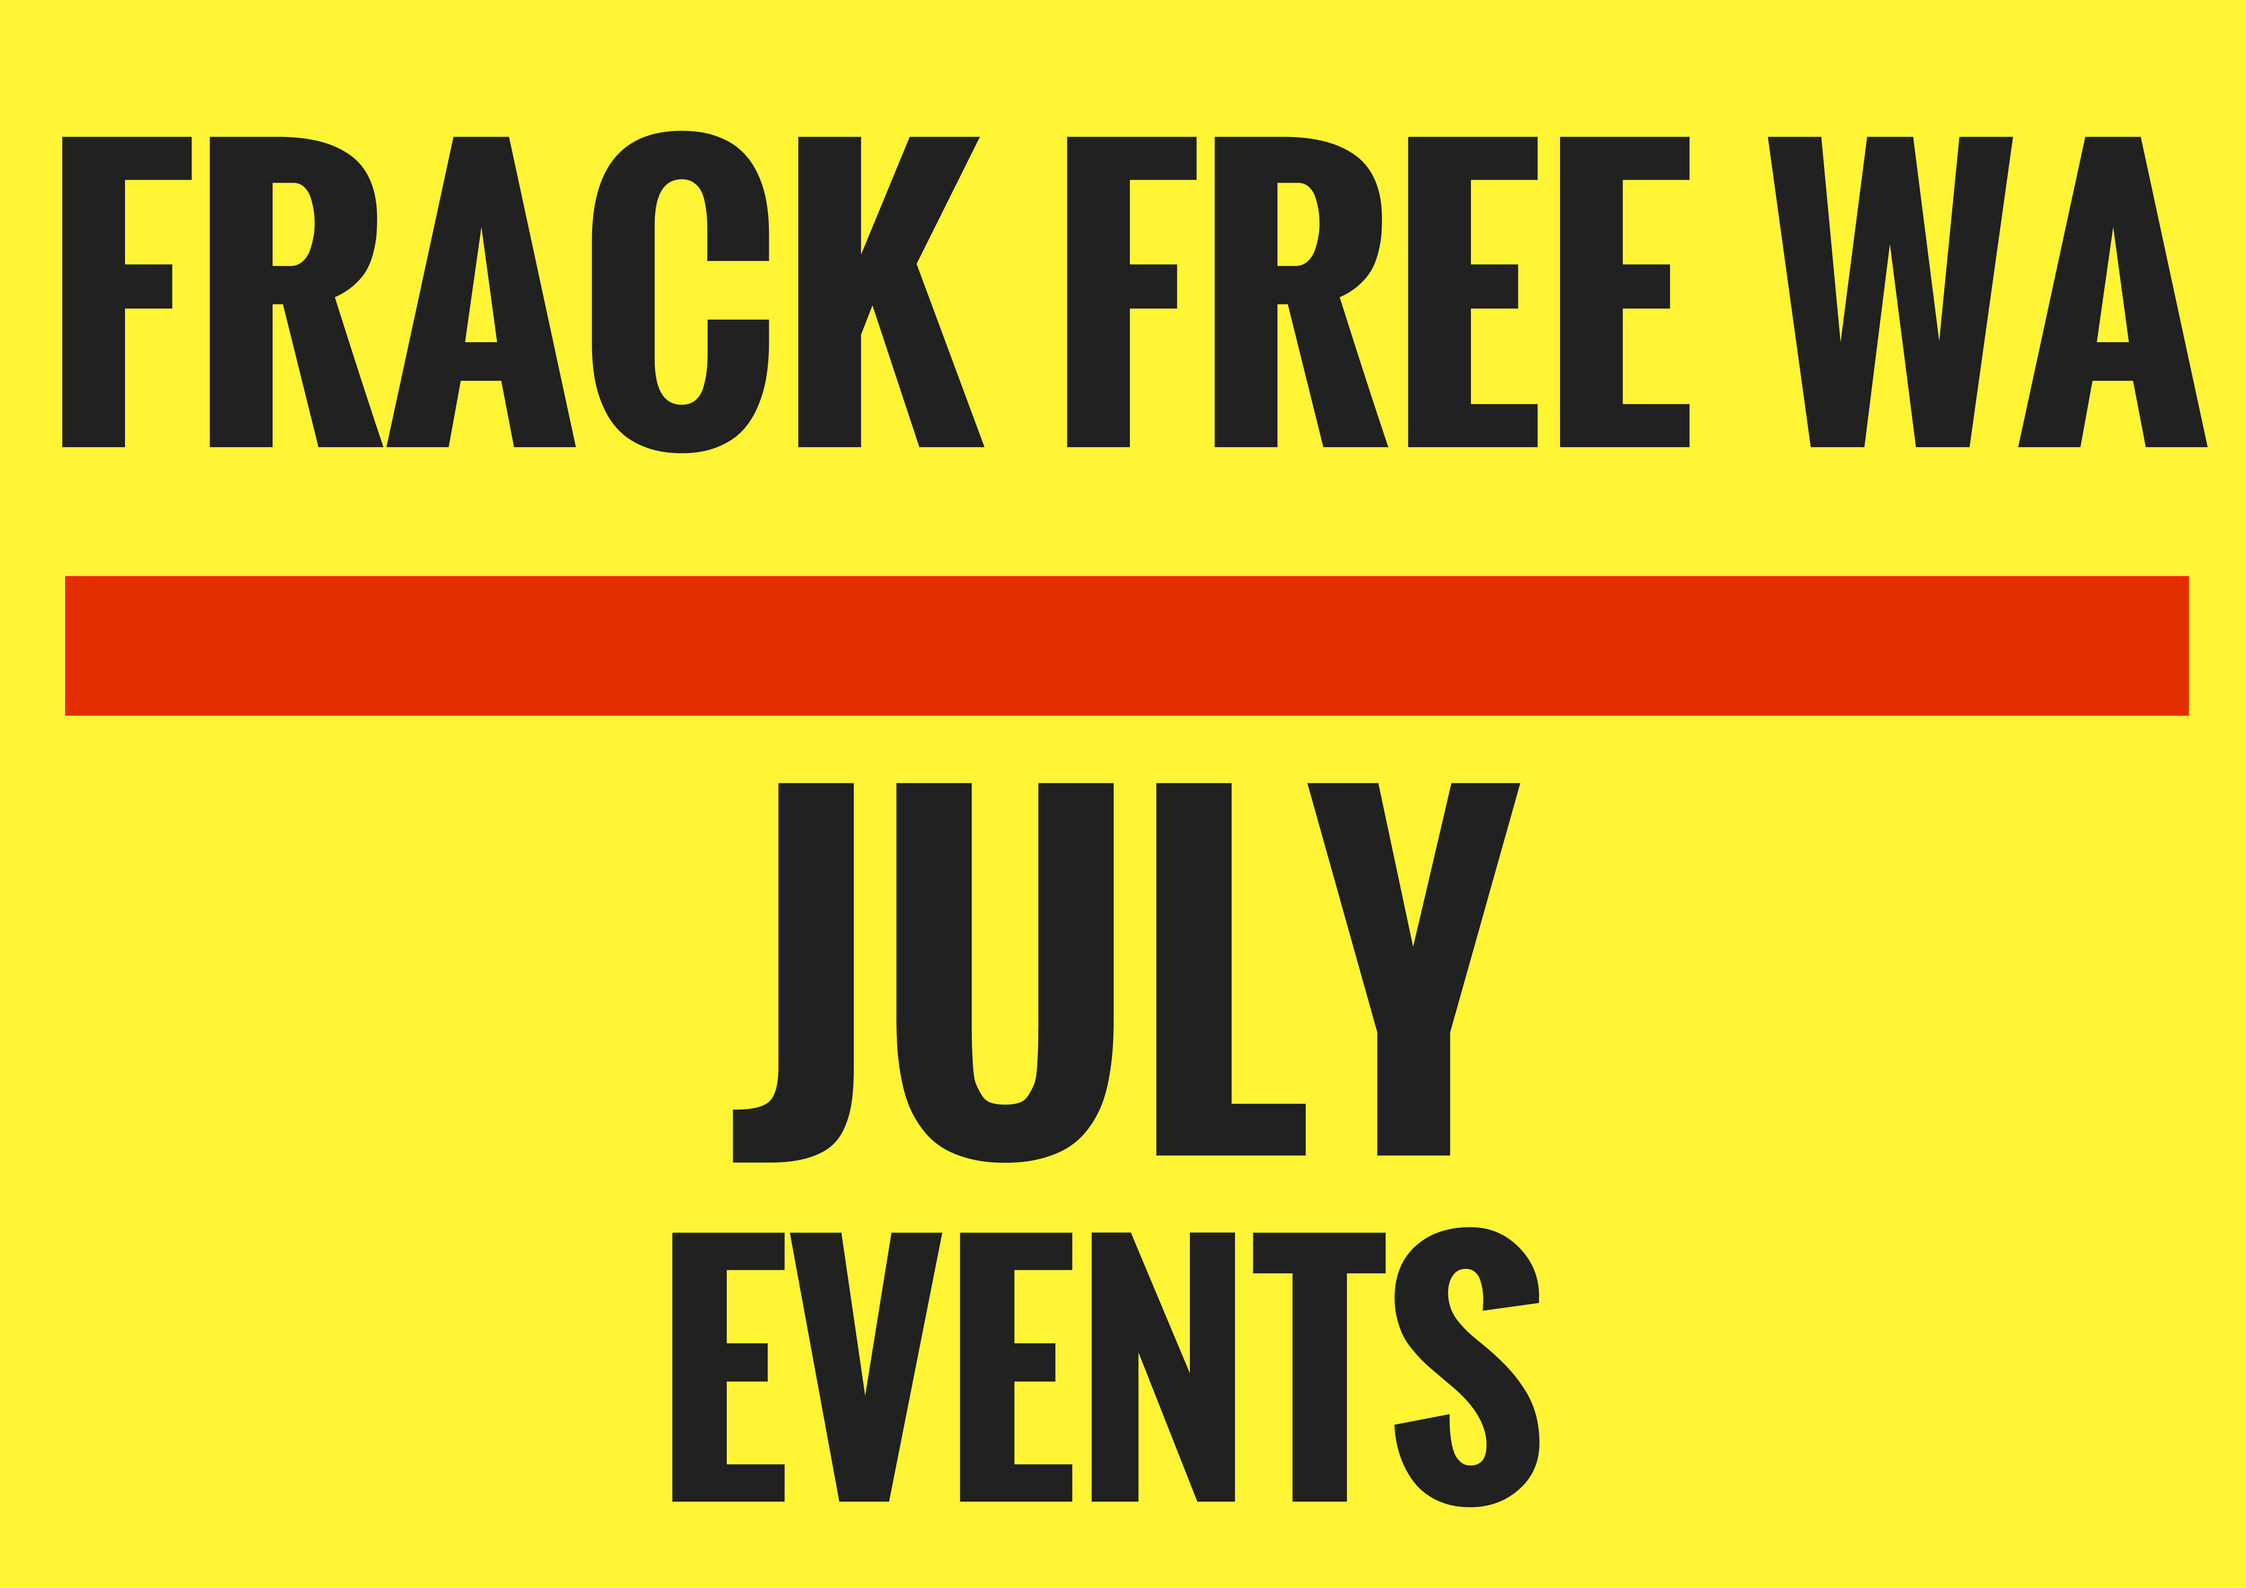 July-Frack-Free-events.png